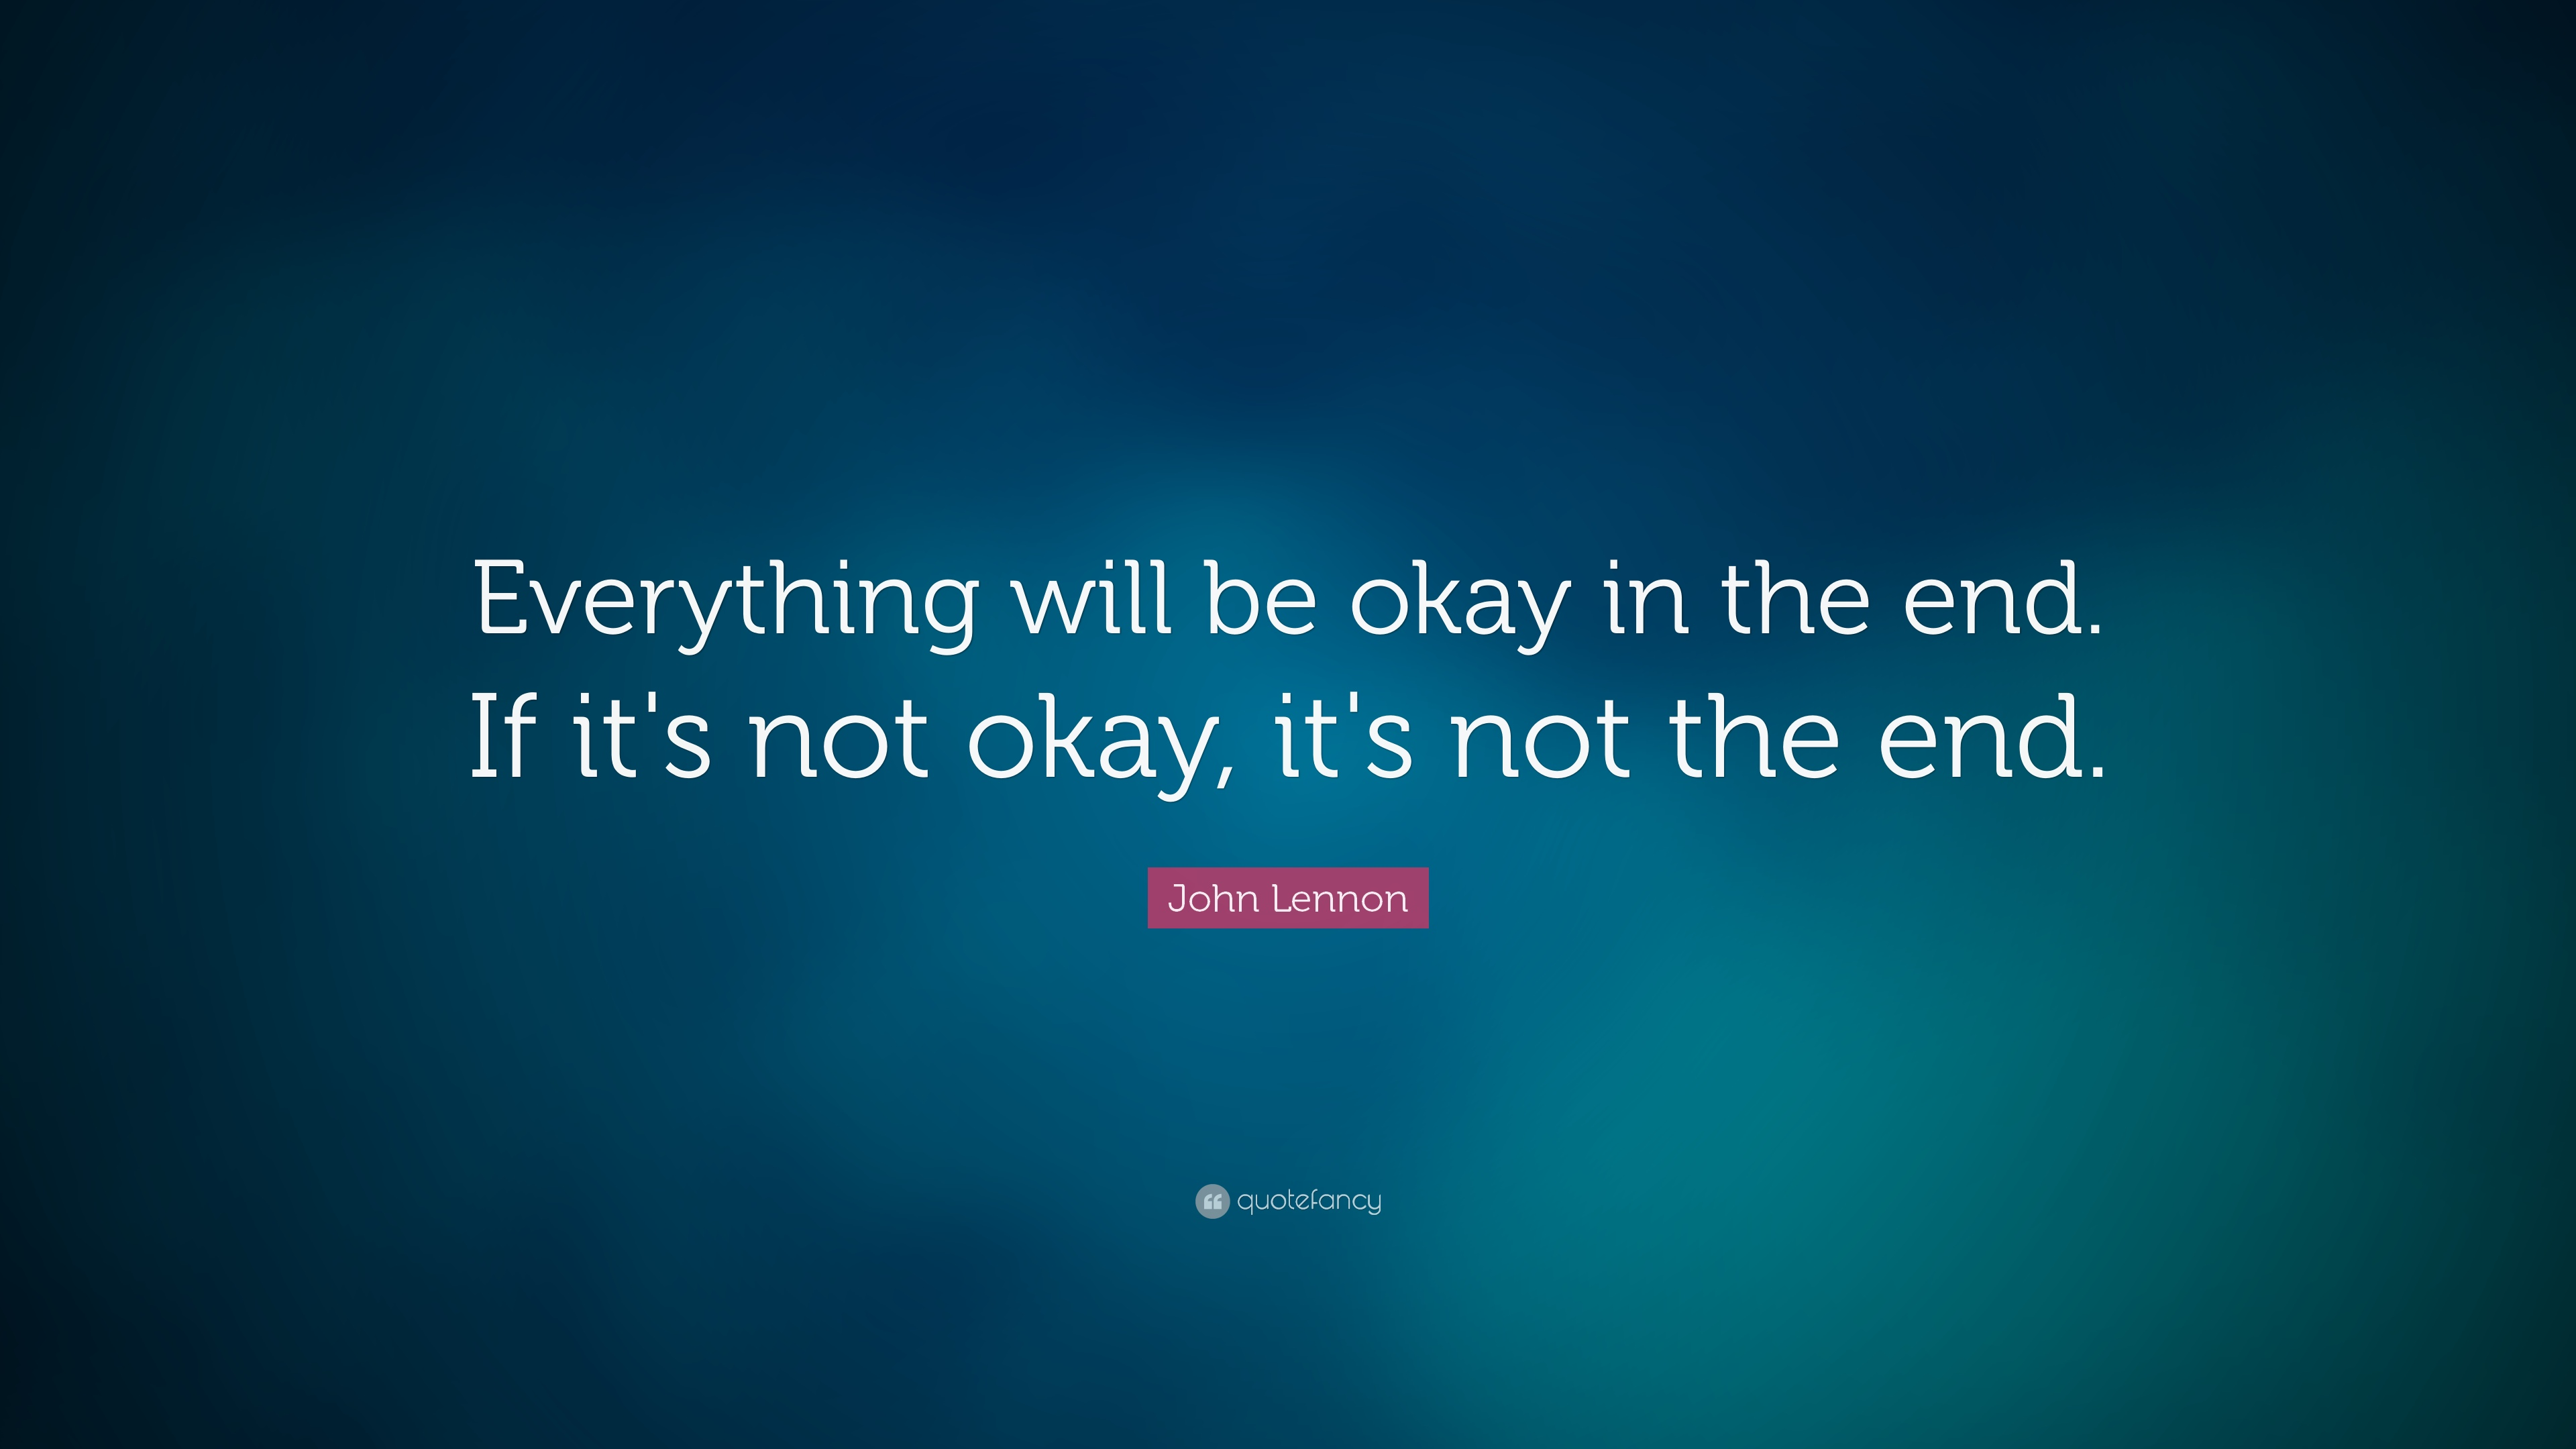 John Lennon Quote: Everything will be okay in the end. If